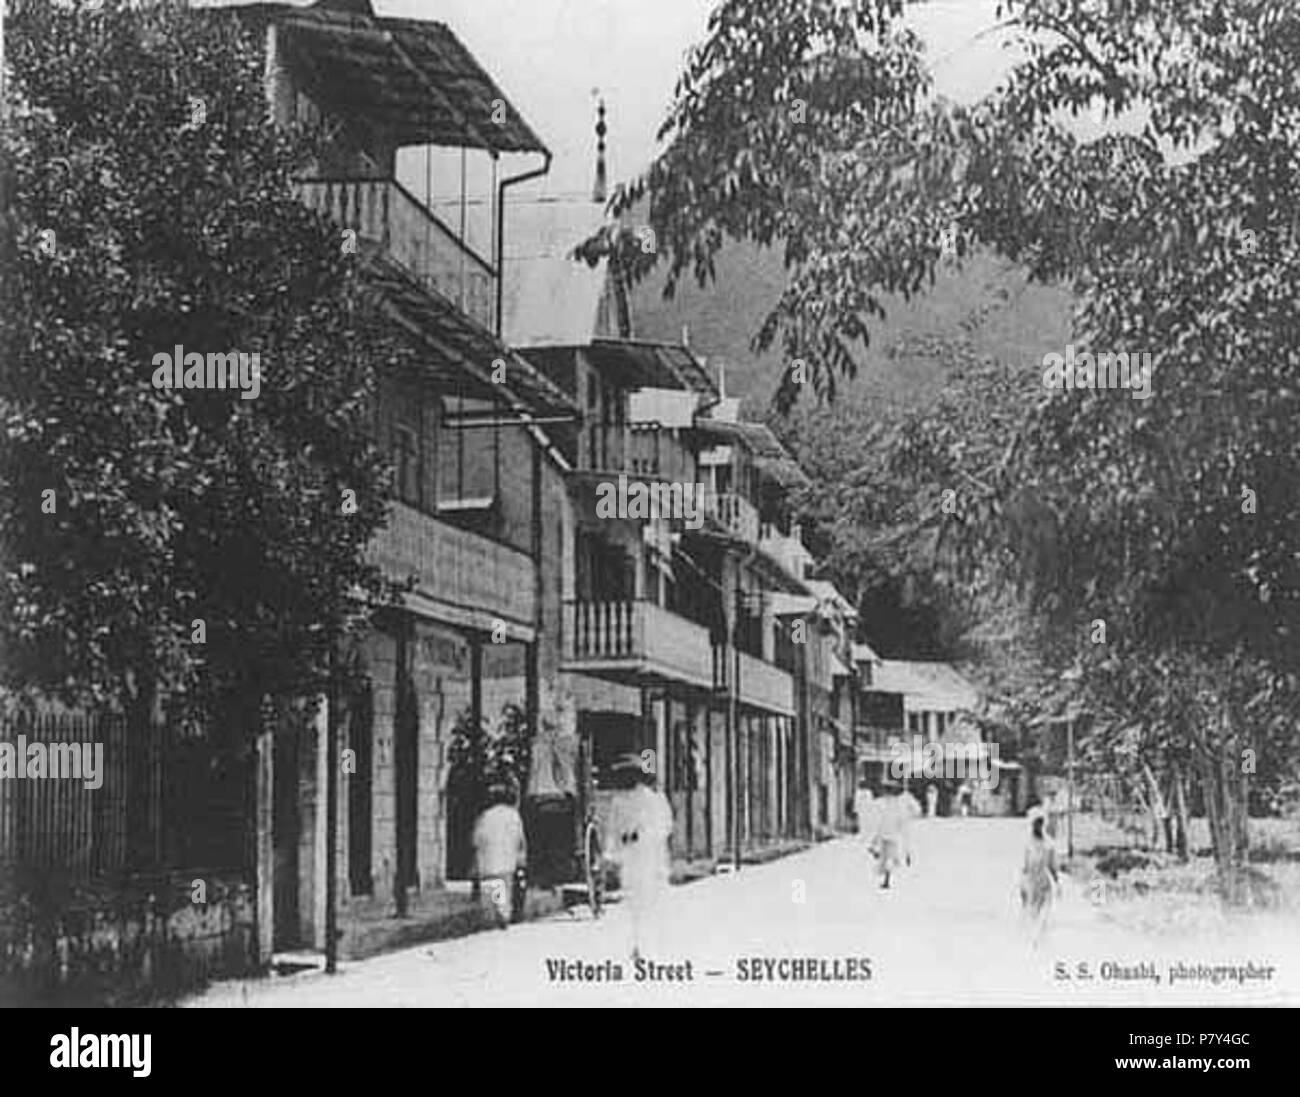 N/A. N/A 392 Victoria Street Victoria Seychelles 1900s - Stock Image